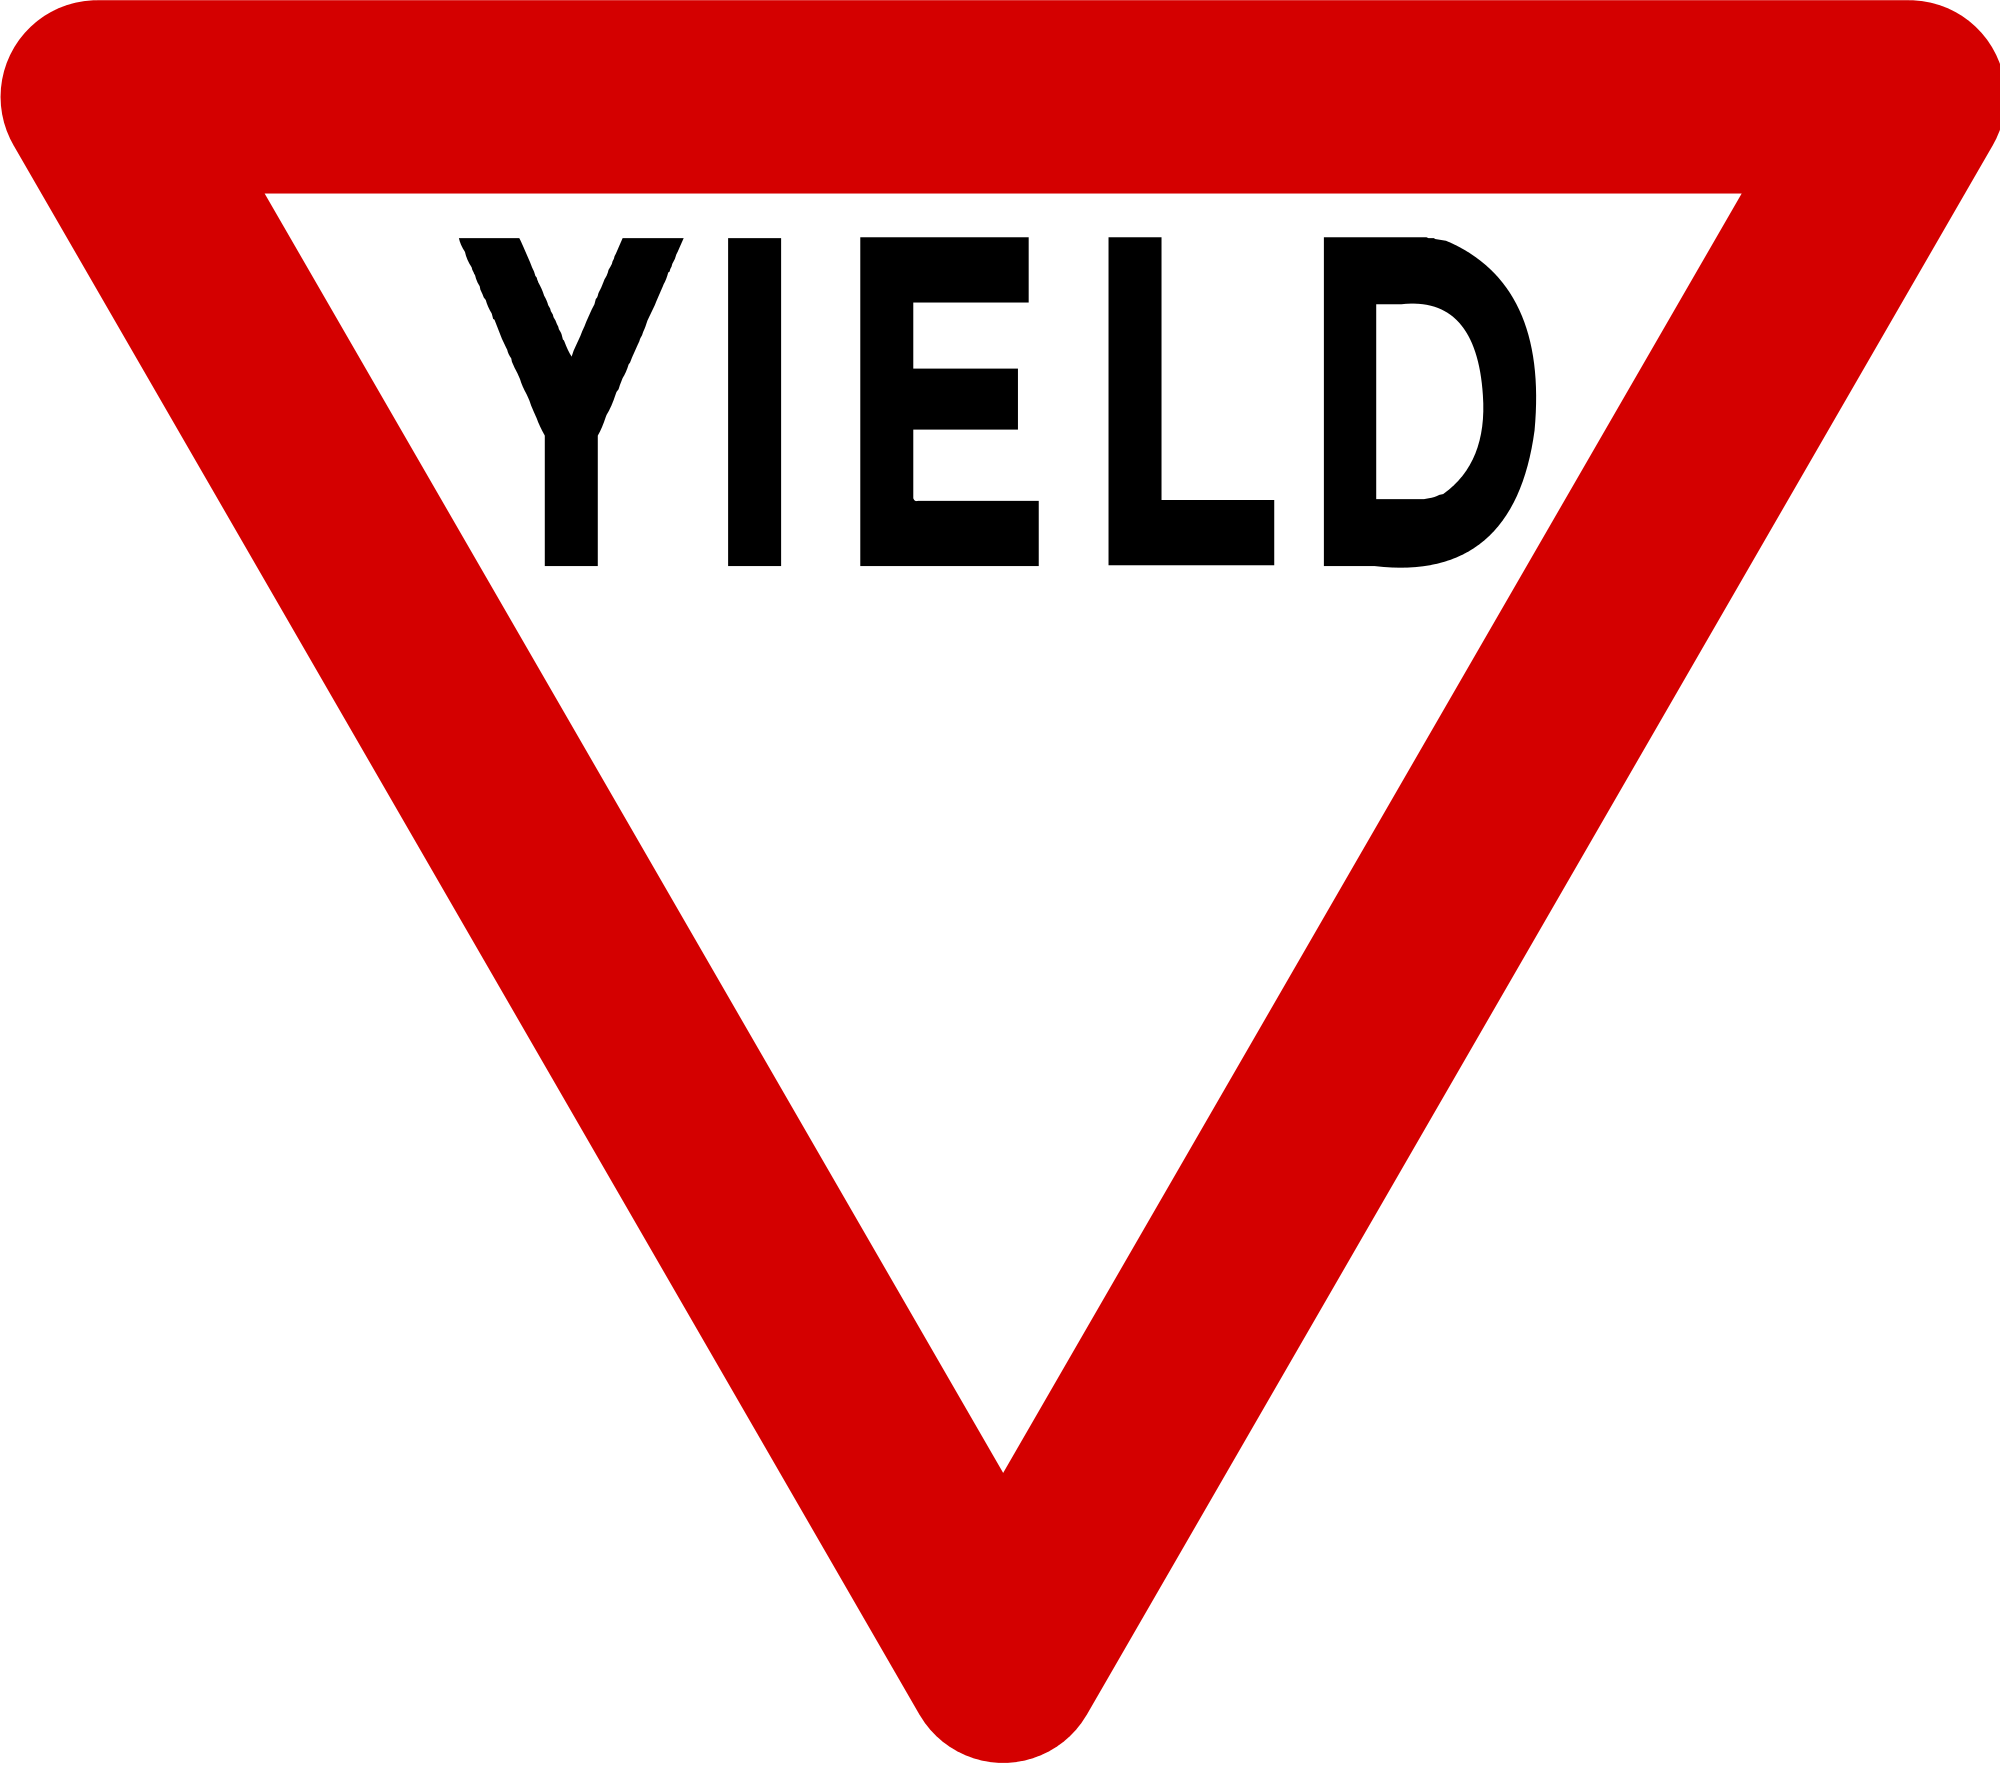 File mandatory road svg. Yield sign png image black and white